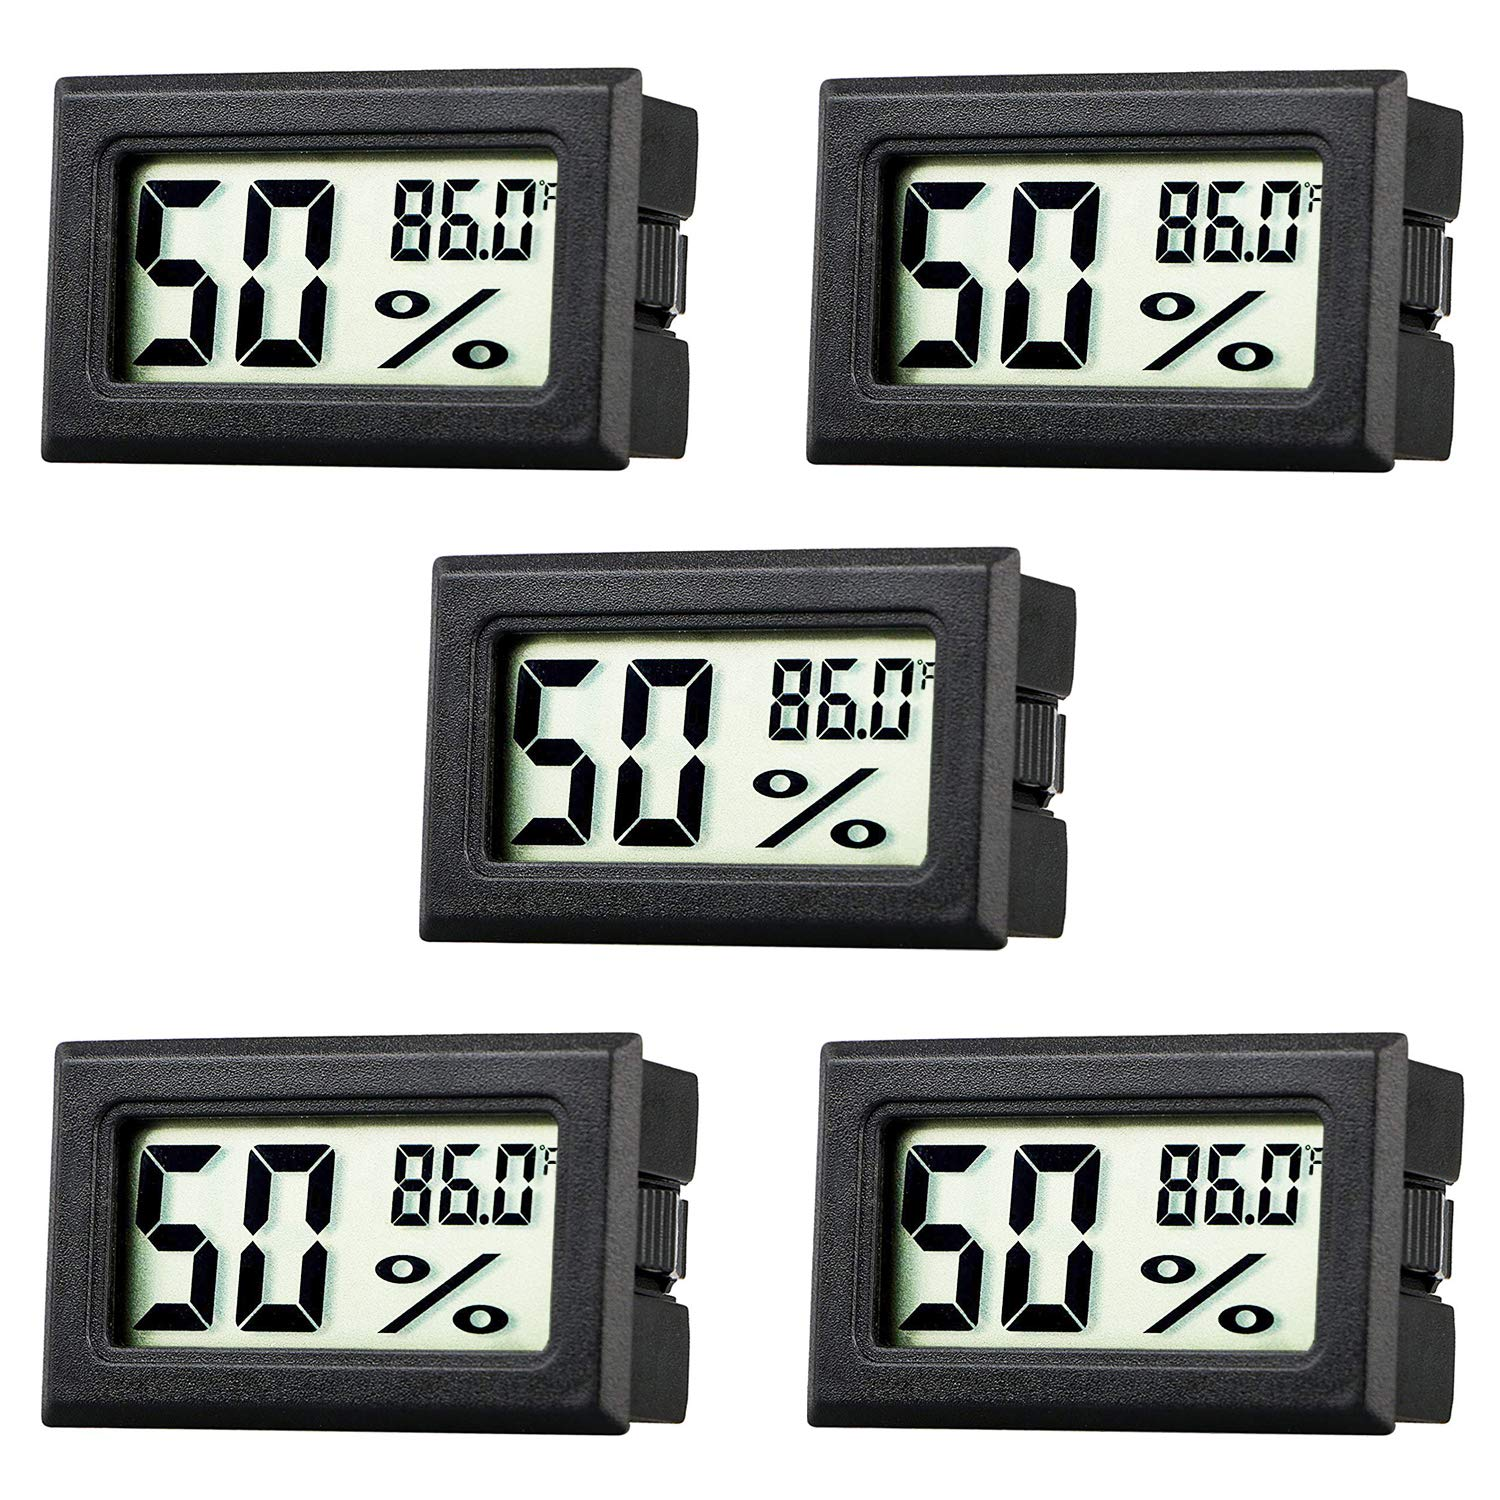 Rojuna 5 Pack Mini Thermometer Hygrometer, Small Digital Electronic Temperature Humidity Meters Gauge Indoor LCD Display Fahrenheit (℉) for Humidors, Greenhouse, Garden, Cellar, Fridge, Closet